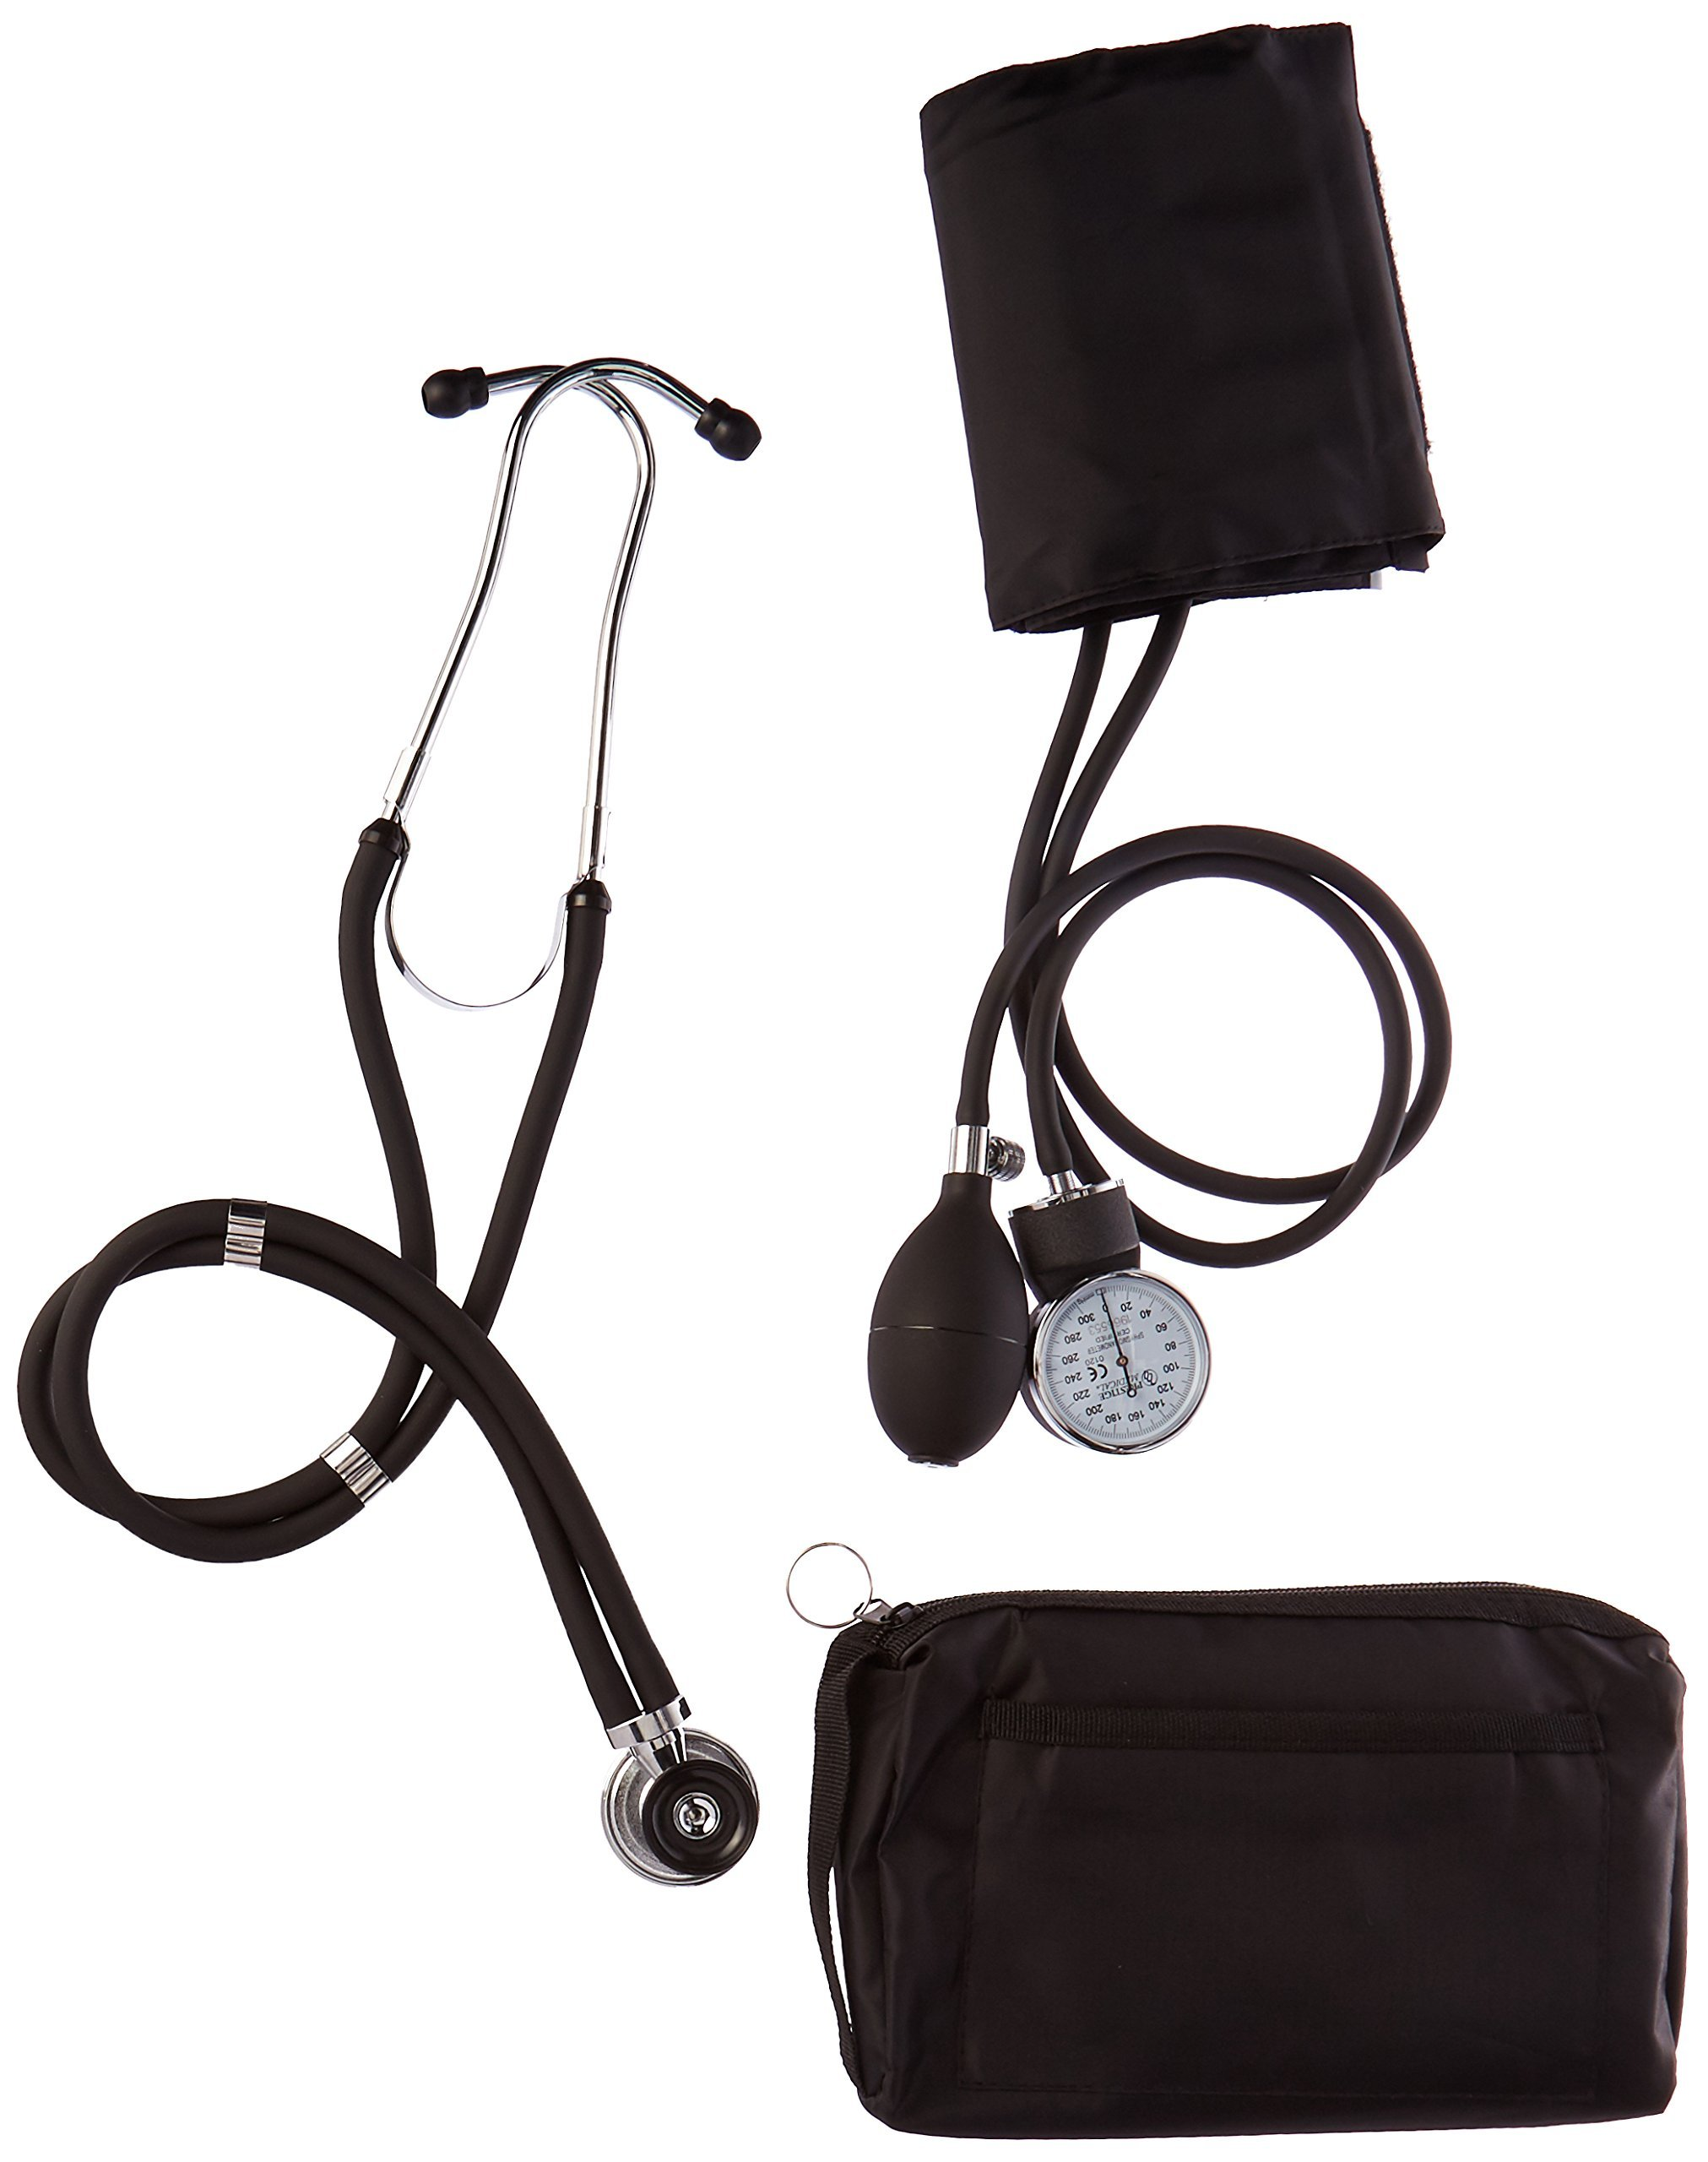 Prestige Medical Basic Aneroid Sphygmomanometer/Sprague Rappaport Stethoscope, Black